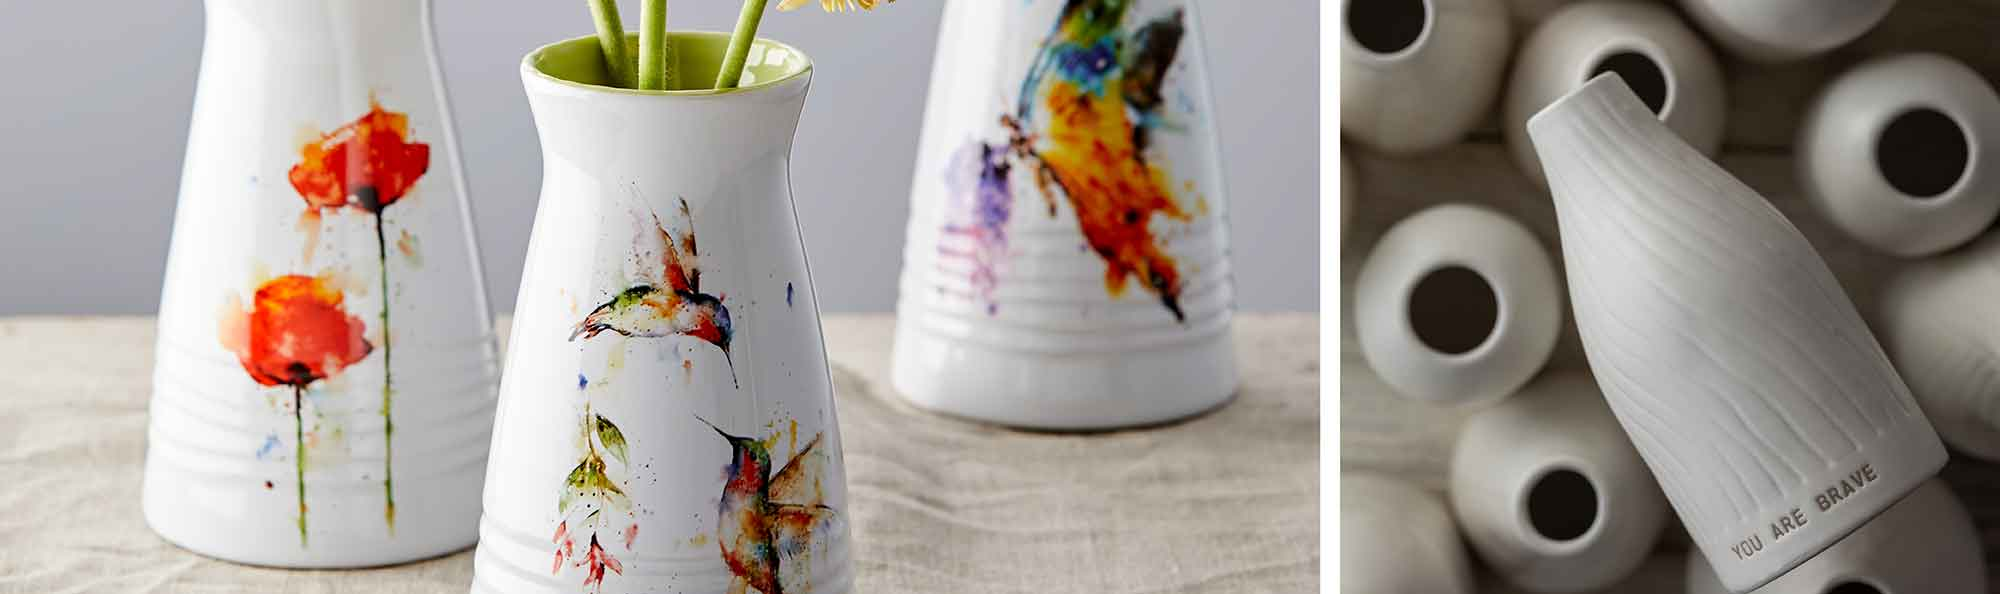 vases with water colored flowers and animals